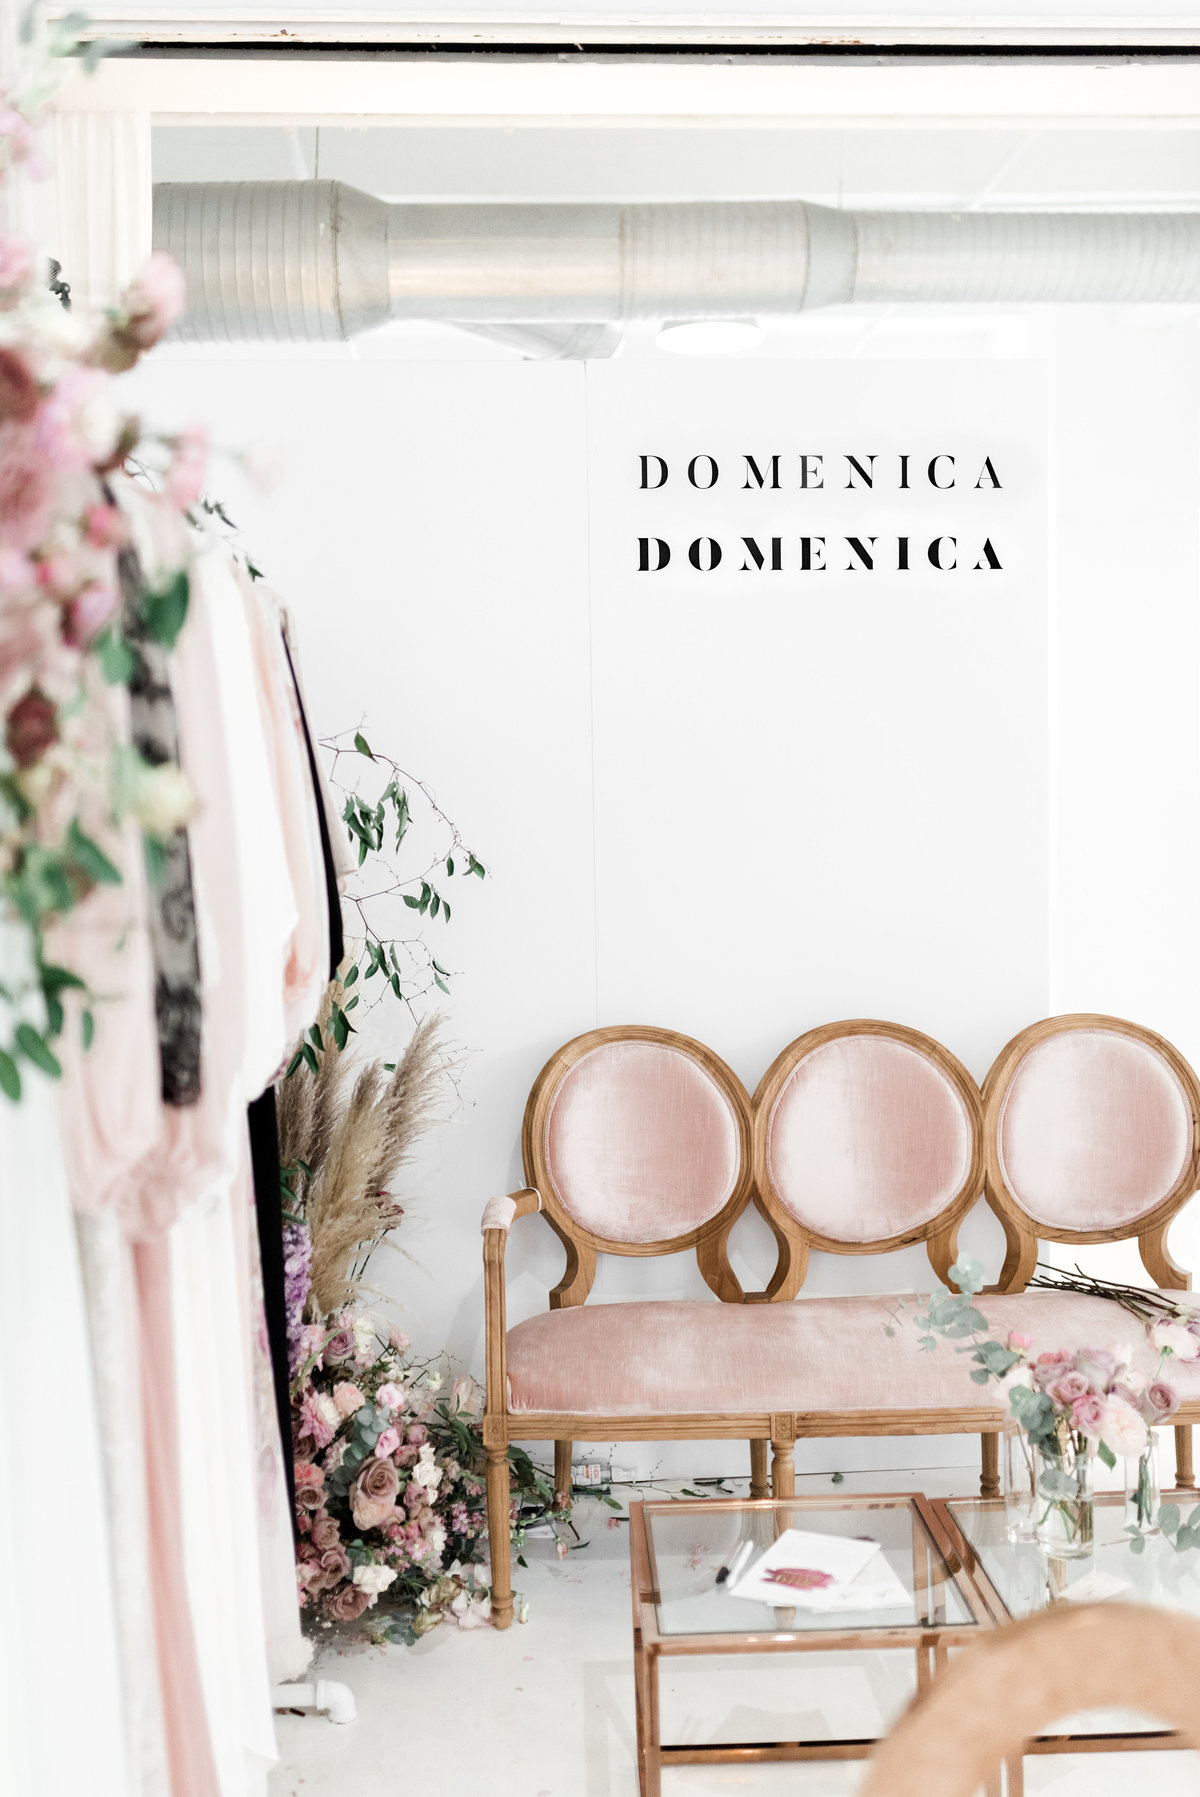 DOMENICADOMENICA-ONEFINEDAY2018-245